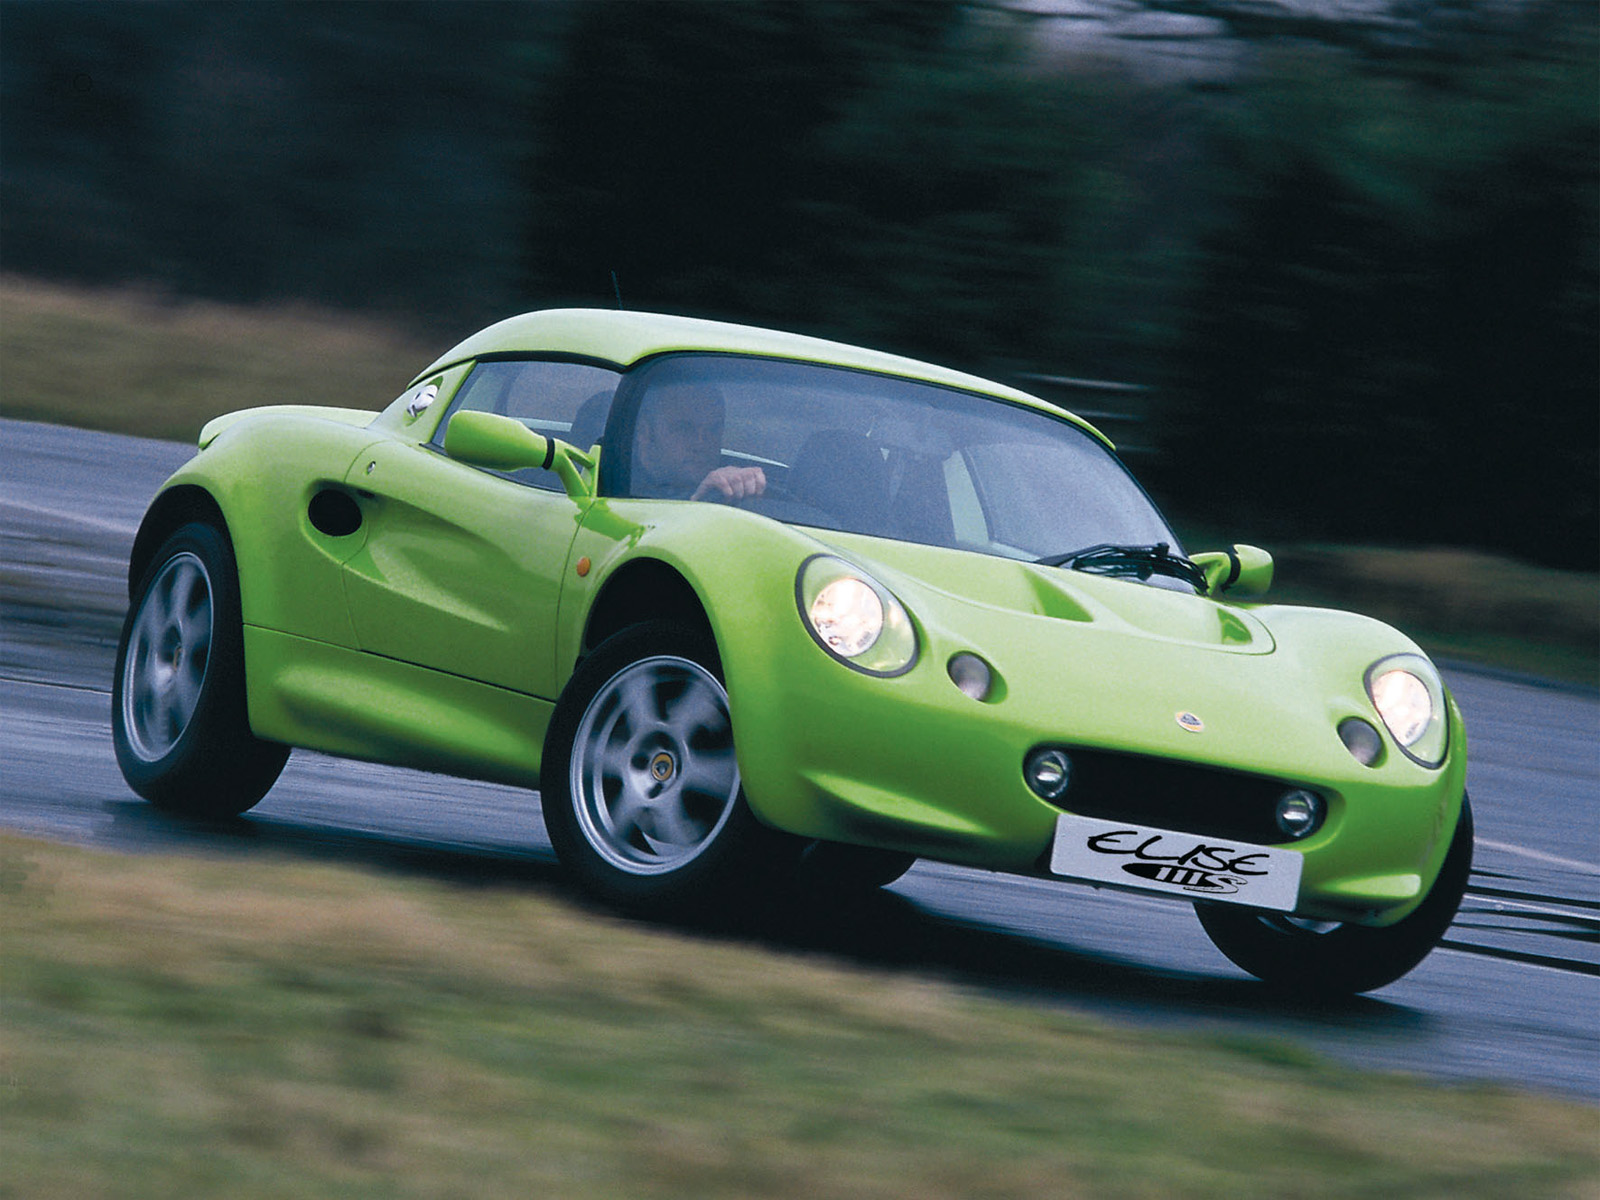 Drivers generation cult driving perfection lotus elise lotus elise 111s 1999 1 vanachro Gallery